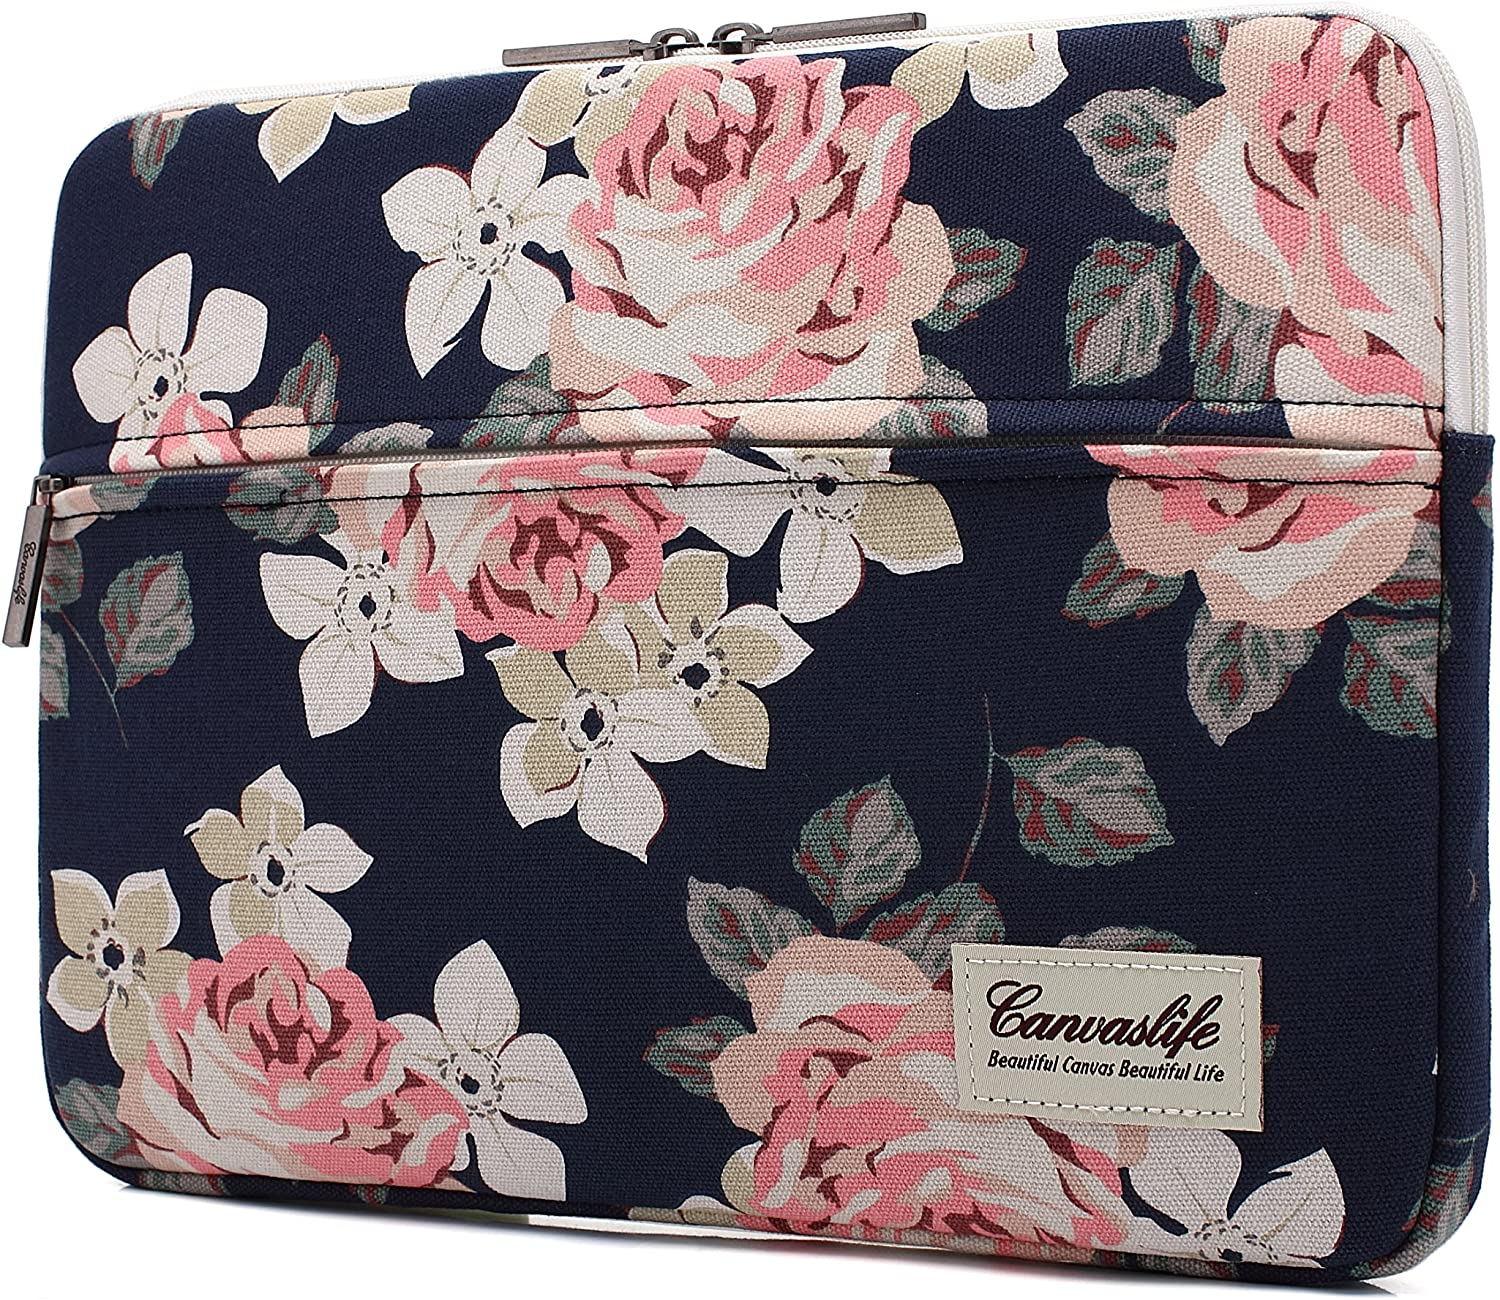 Canvaslife White Rose Laptop Sleeve 15 Inch 15 Case and 15.6 Laptop Bag